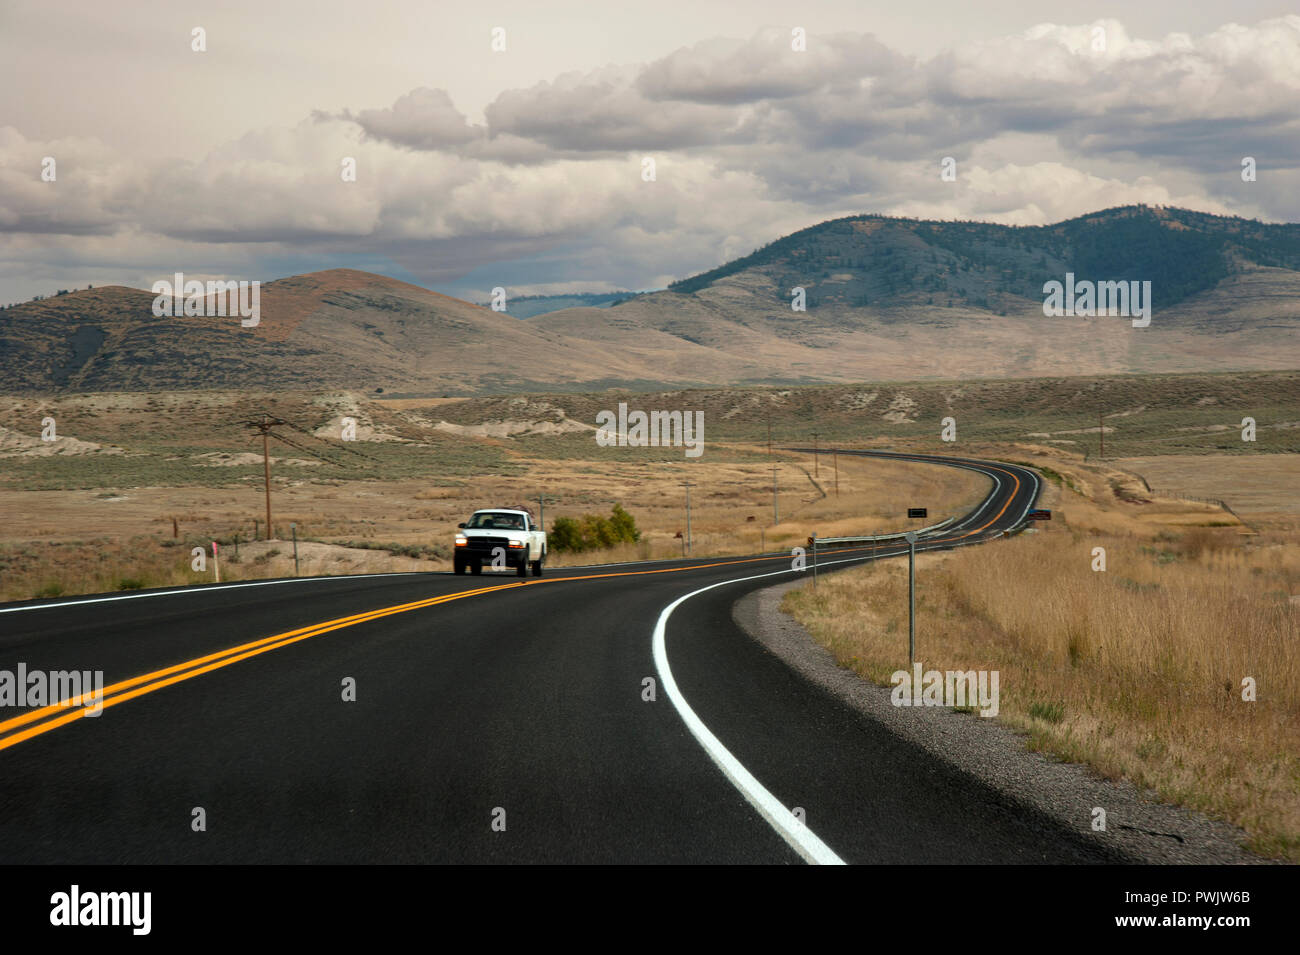 Pickup truck driving on an open road in Montana, USA - Stock Image